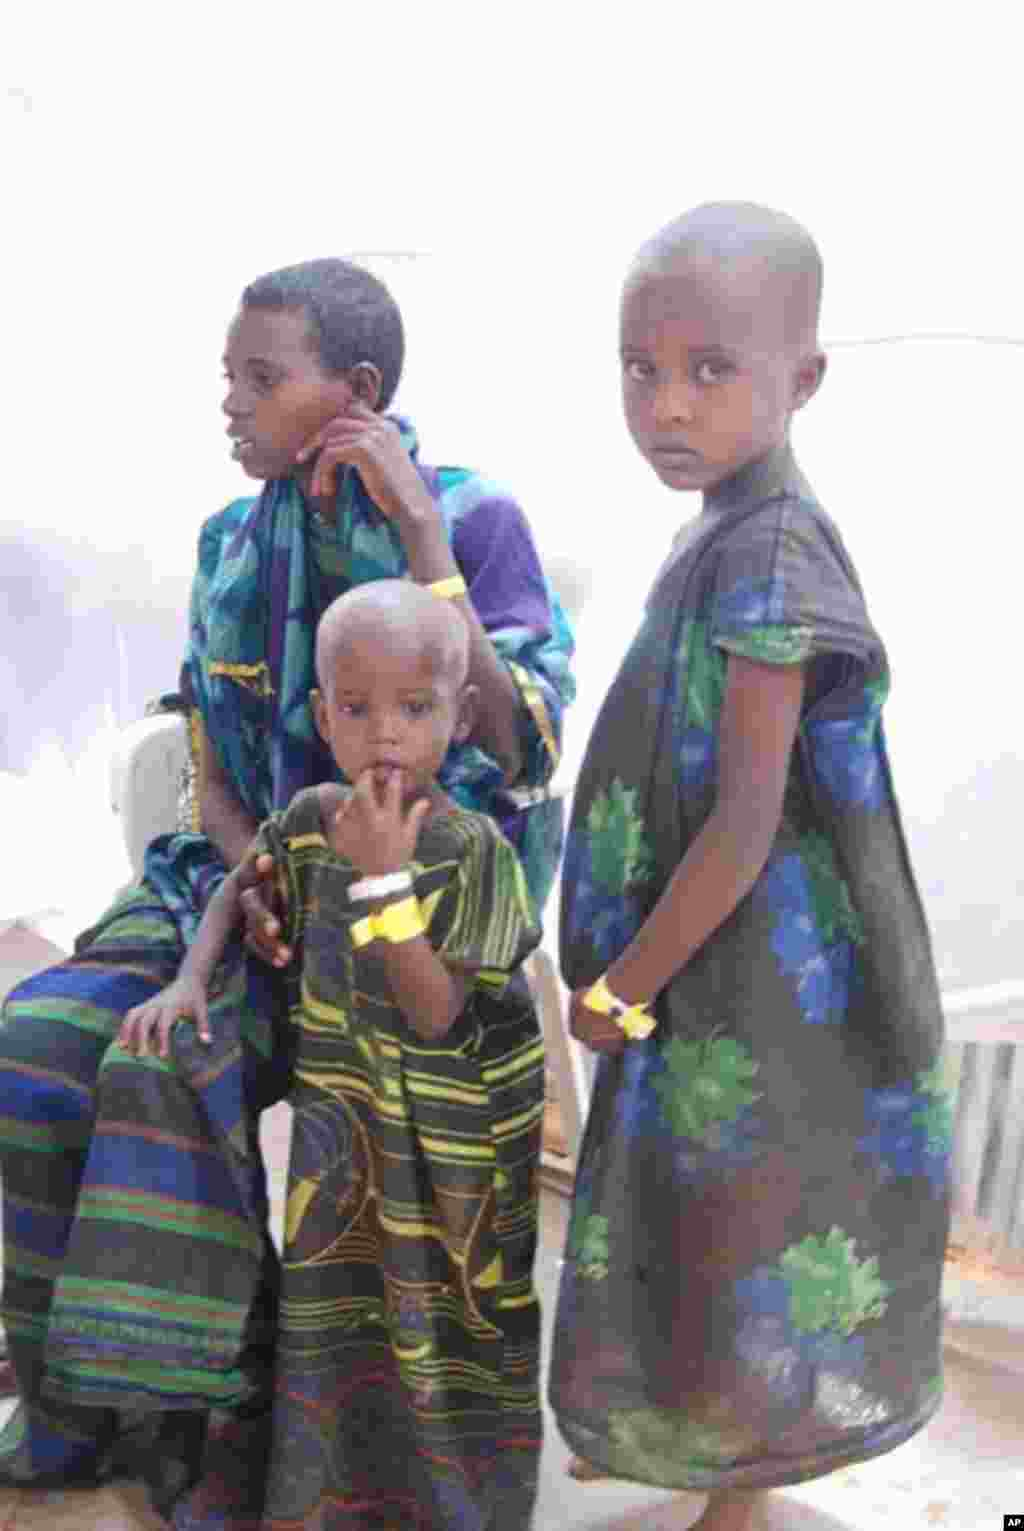 Boys sometimes dress as girls on the journey to avoid being taken and pressed into service at checkpoint set up by Islamic extremist groups that control much of southern Somalia. VOA - P. Heinlein